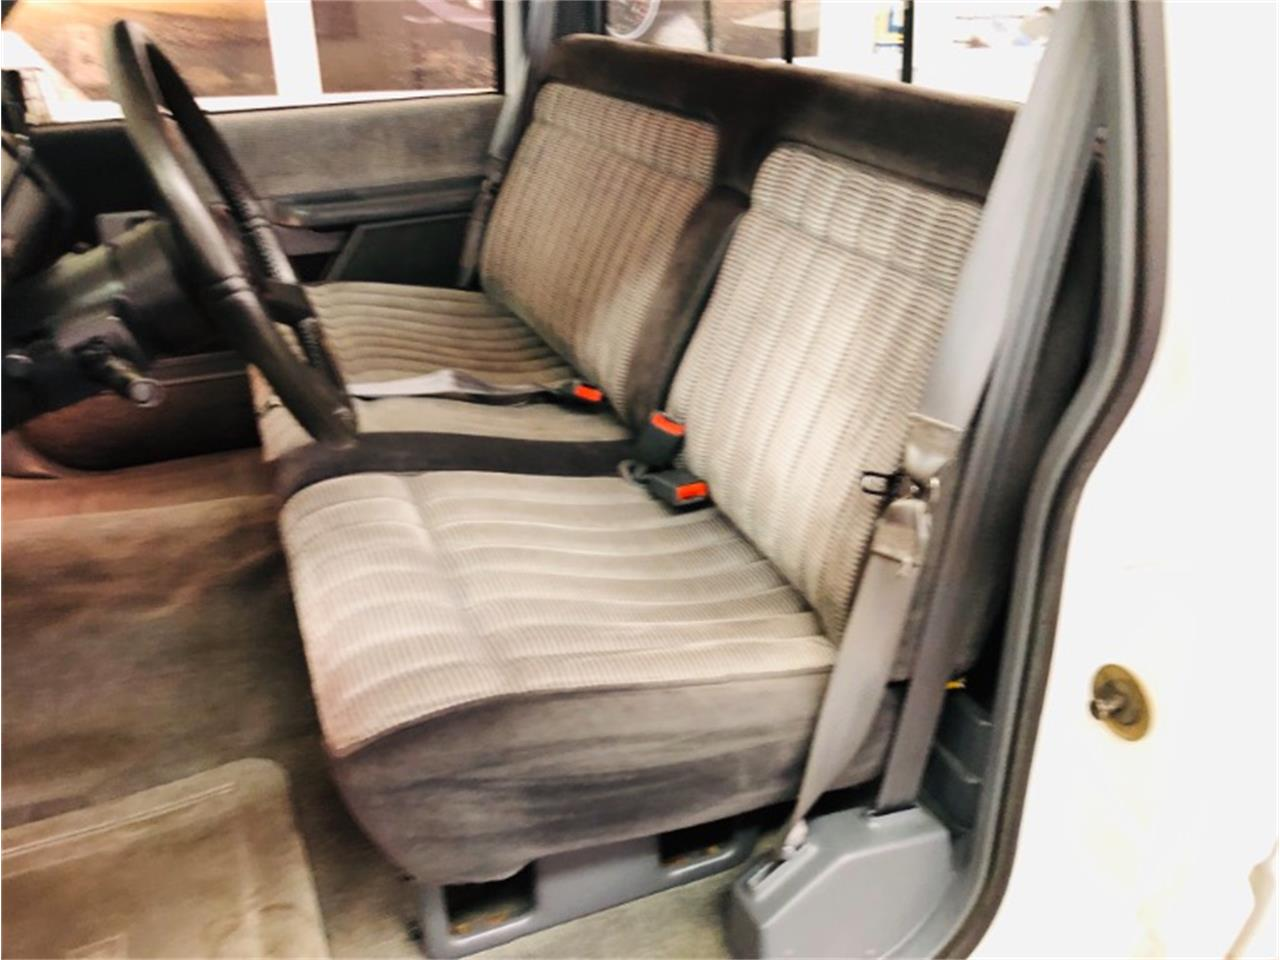 1990 GMC Pickup for sale in Mundelein, IL – photo 33